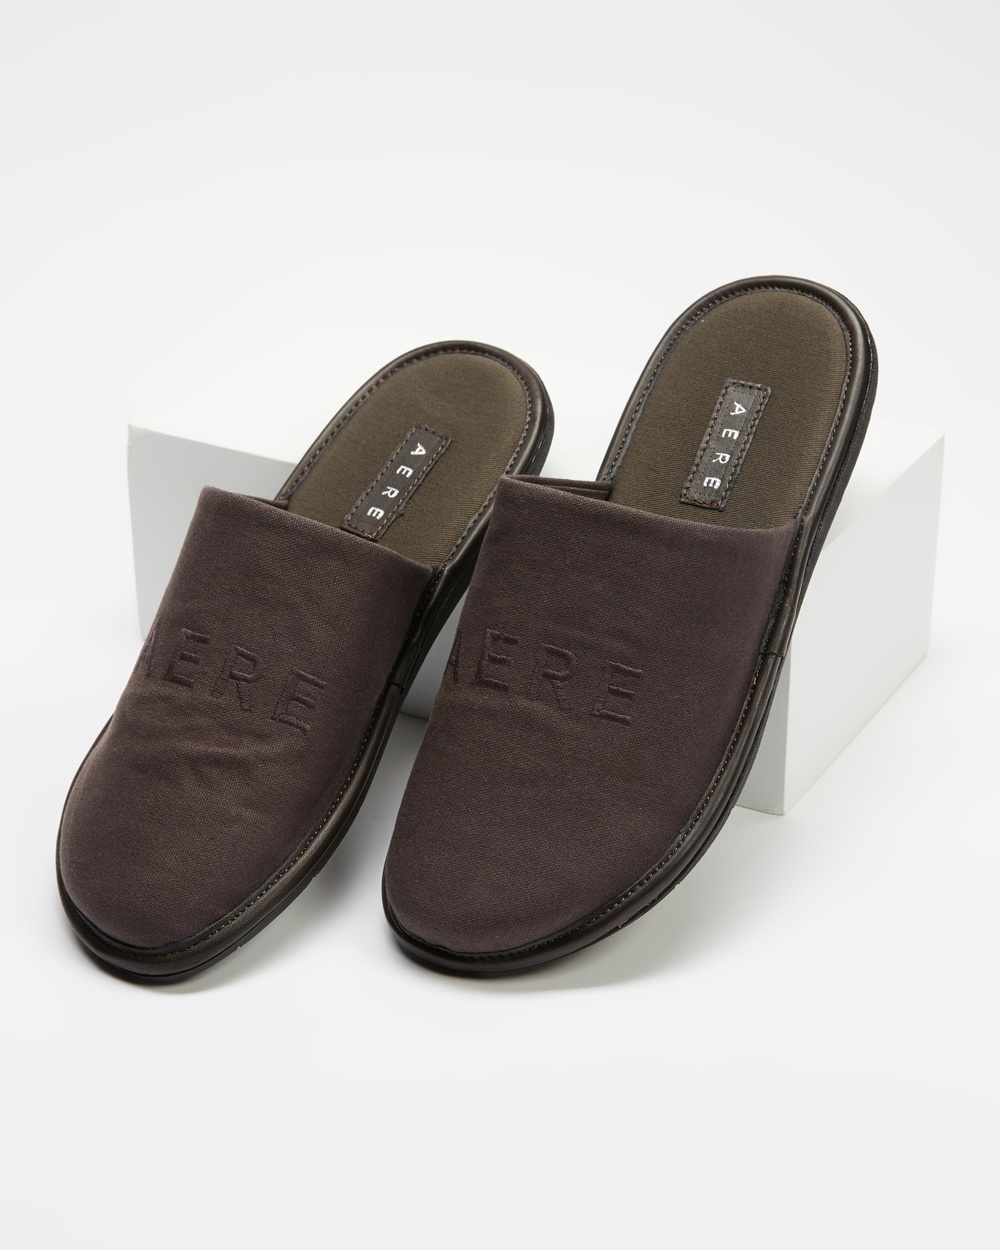 AERE Organic Canvas Embroidered Slippers & Accessories Charcoal